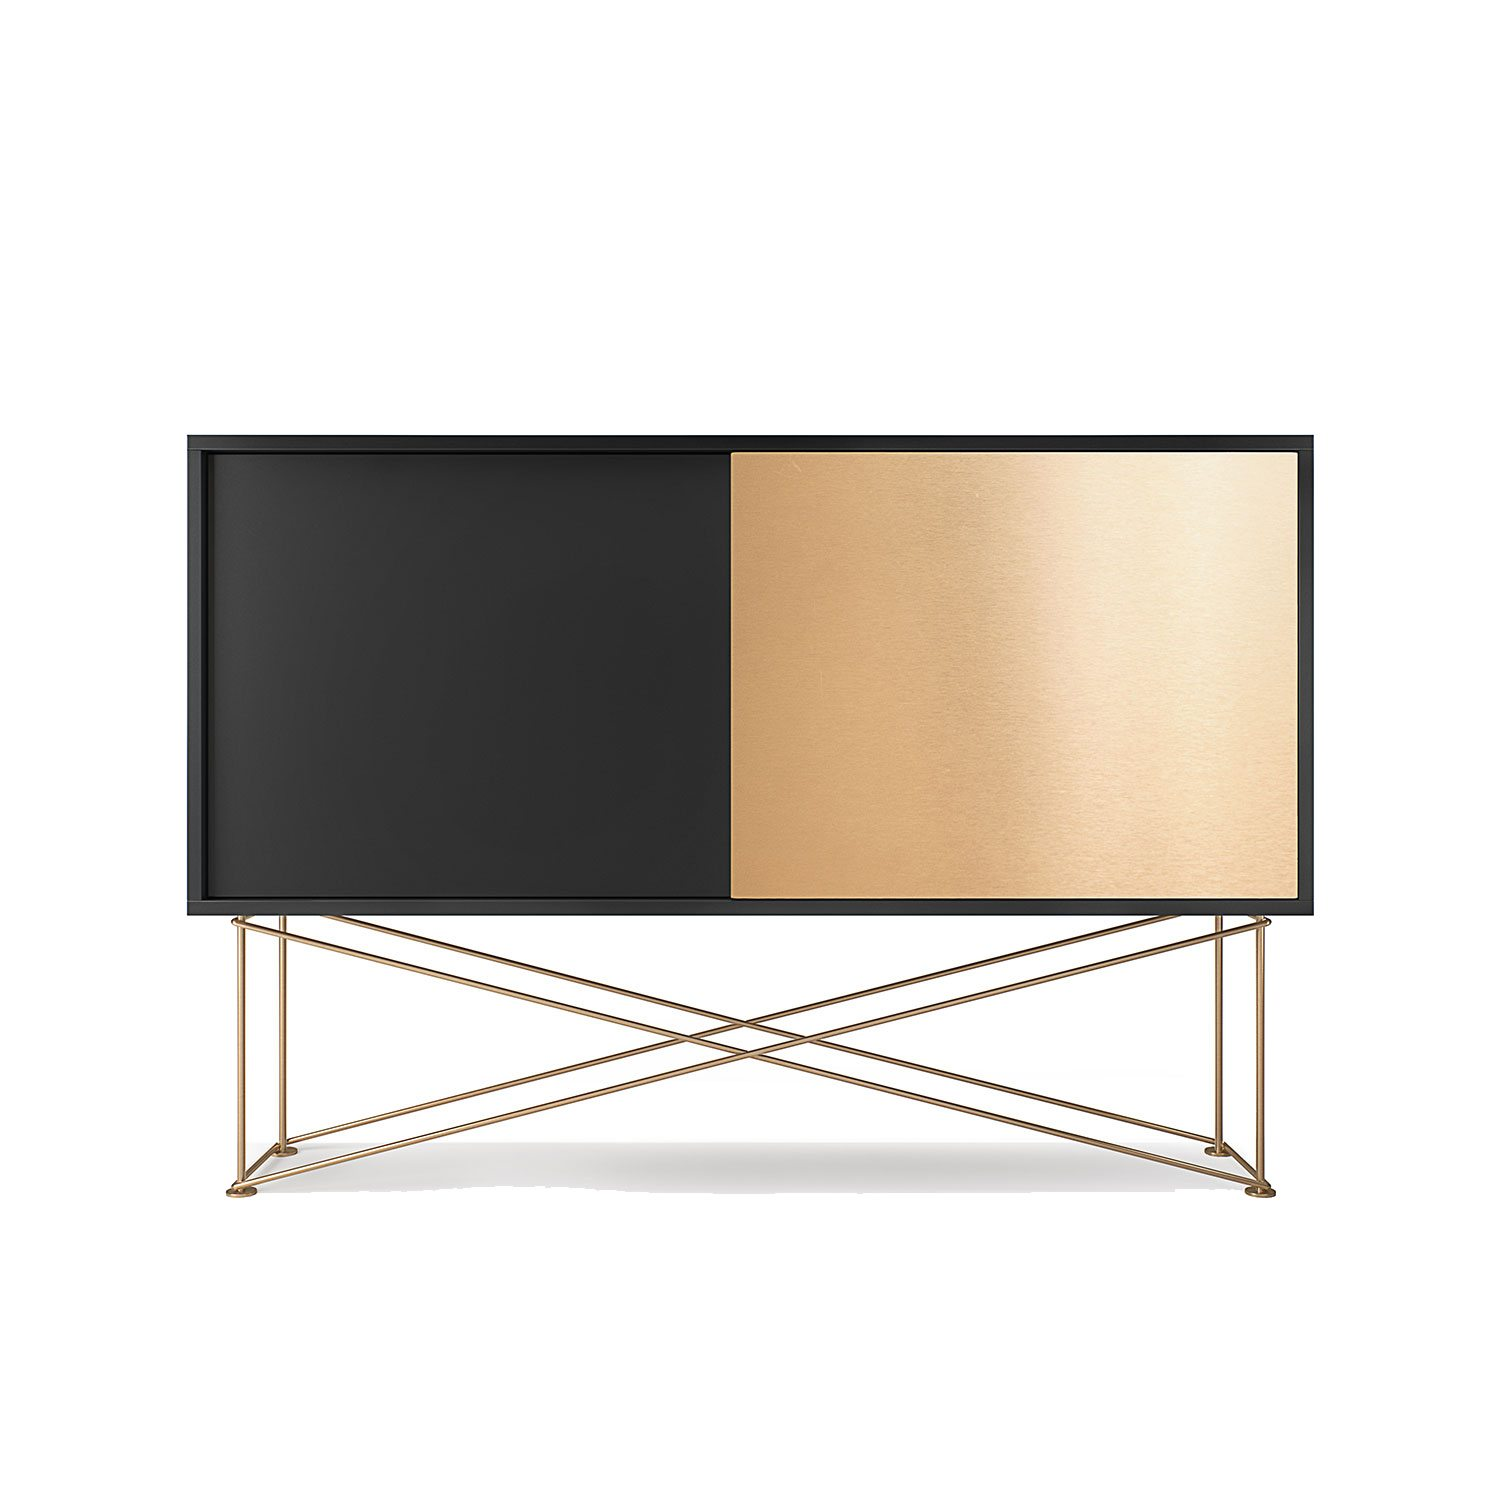 Vogue sideboard 136h, antracit/1A1B/mässing